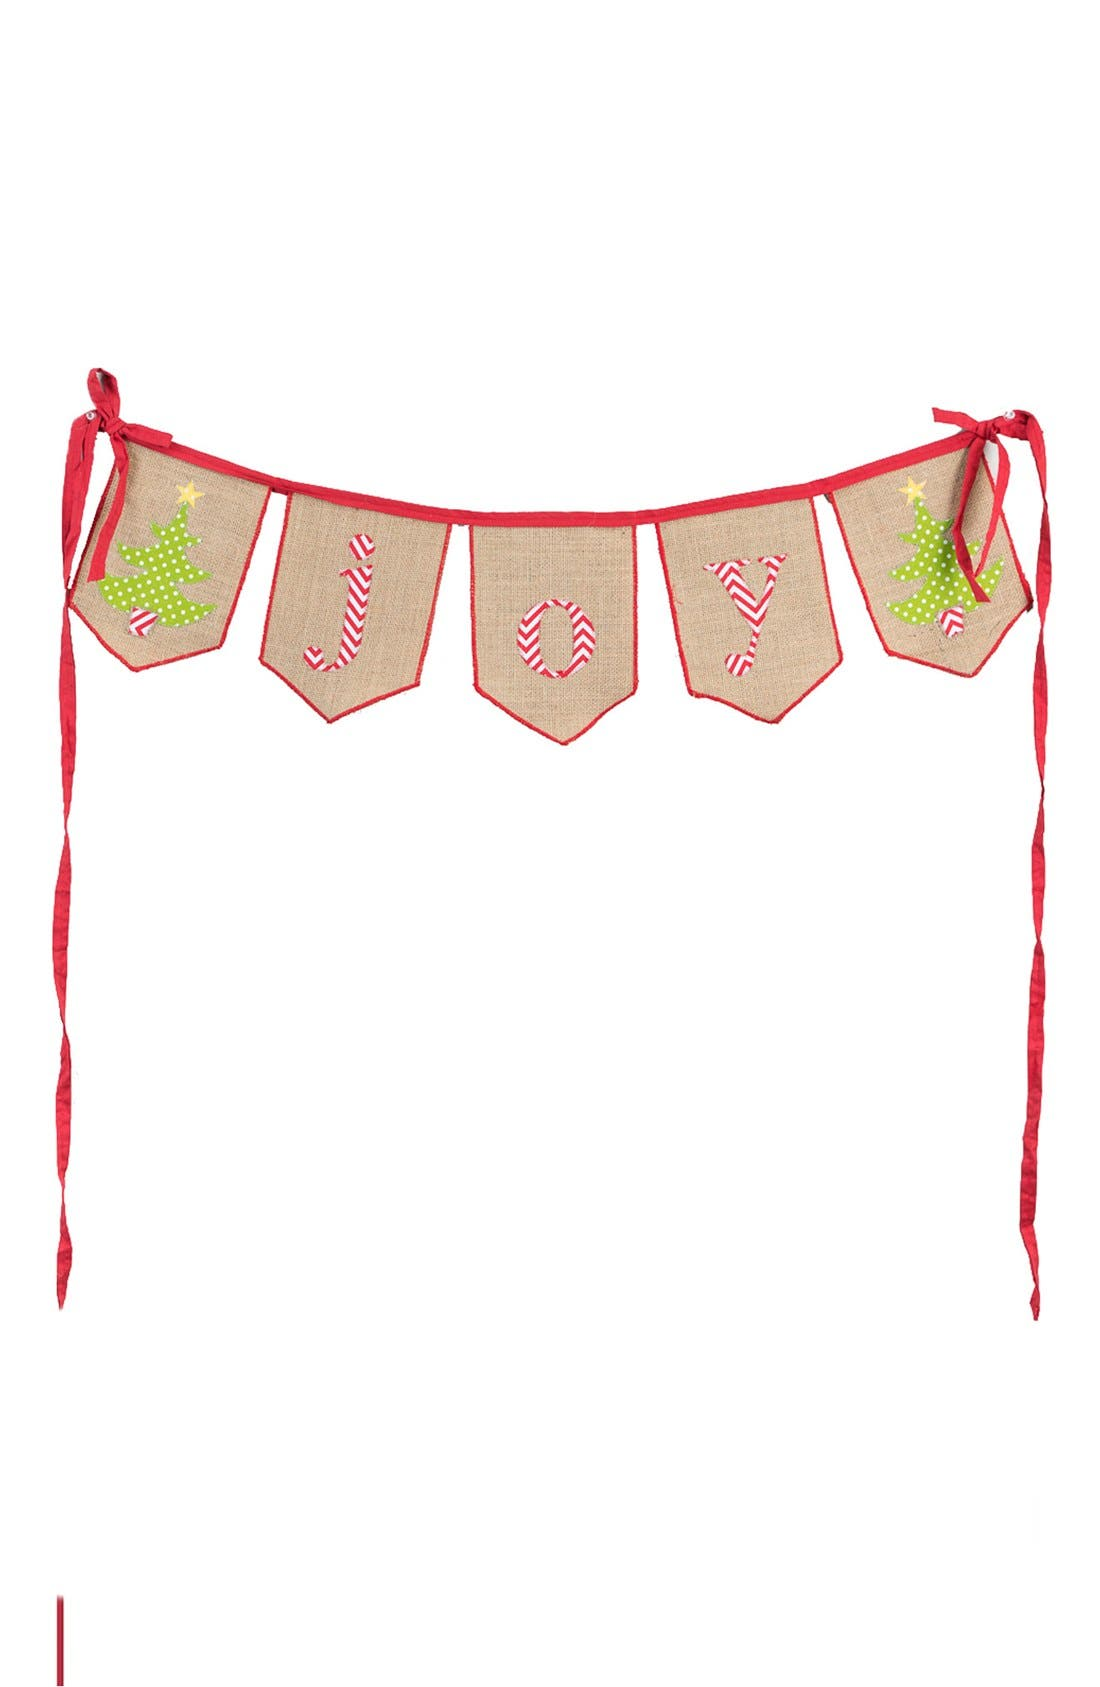 'Joy' Burlap Banner,                             Main thumbnail 1, color,